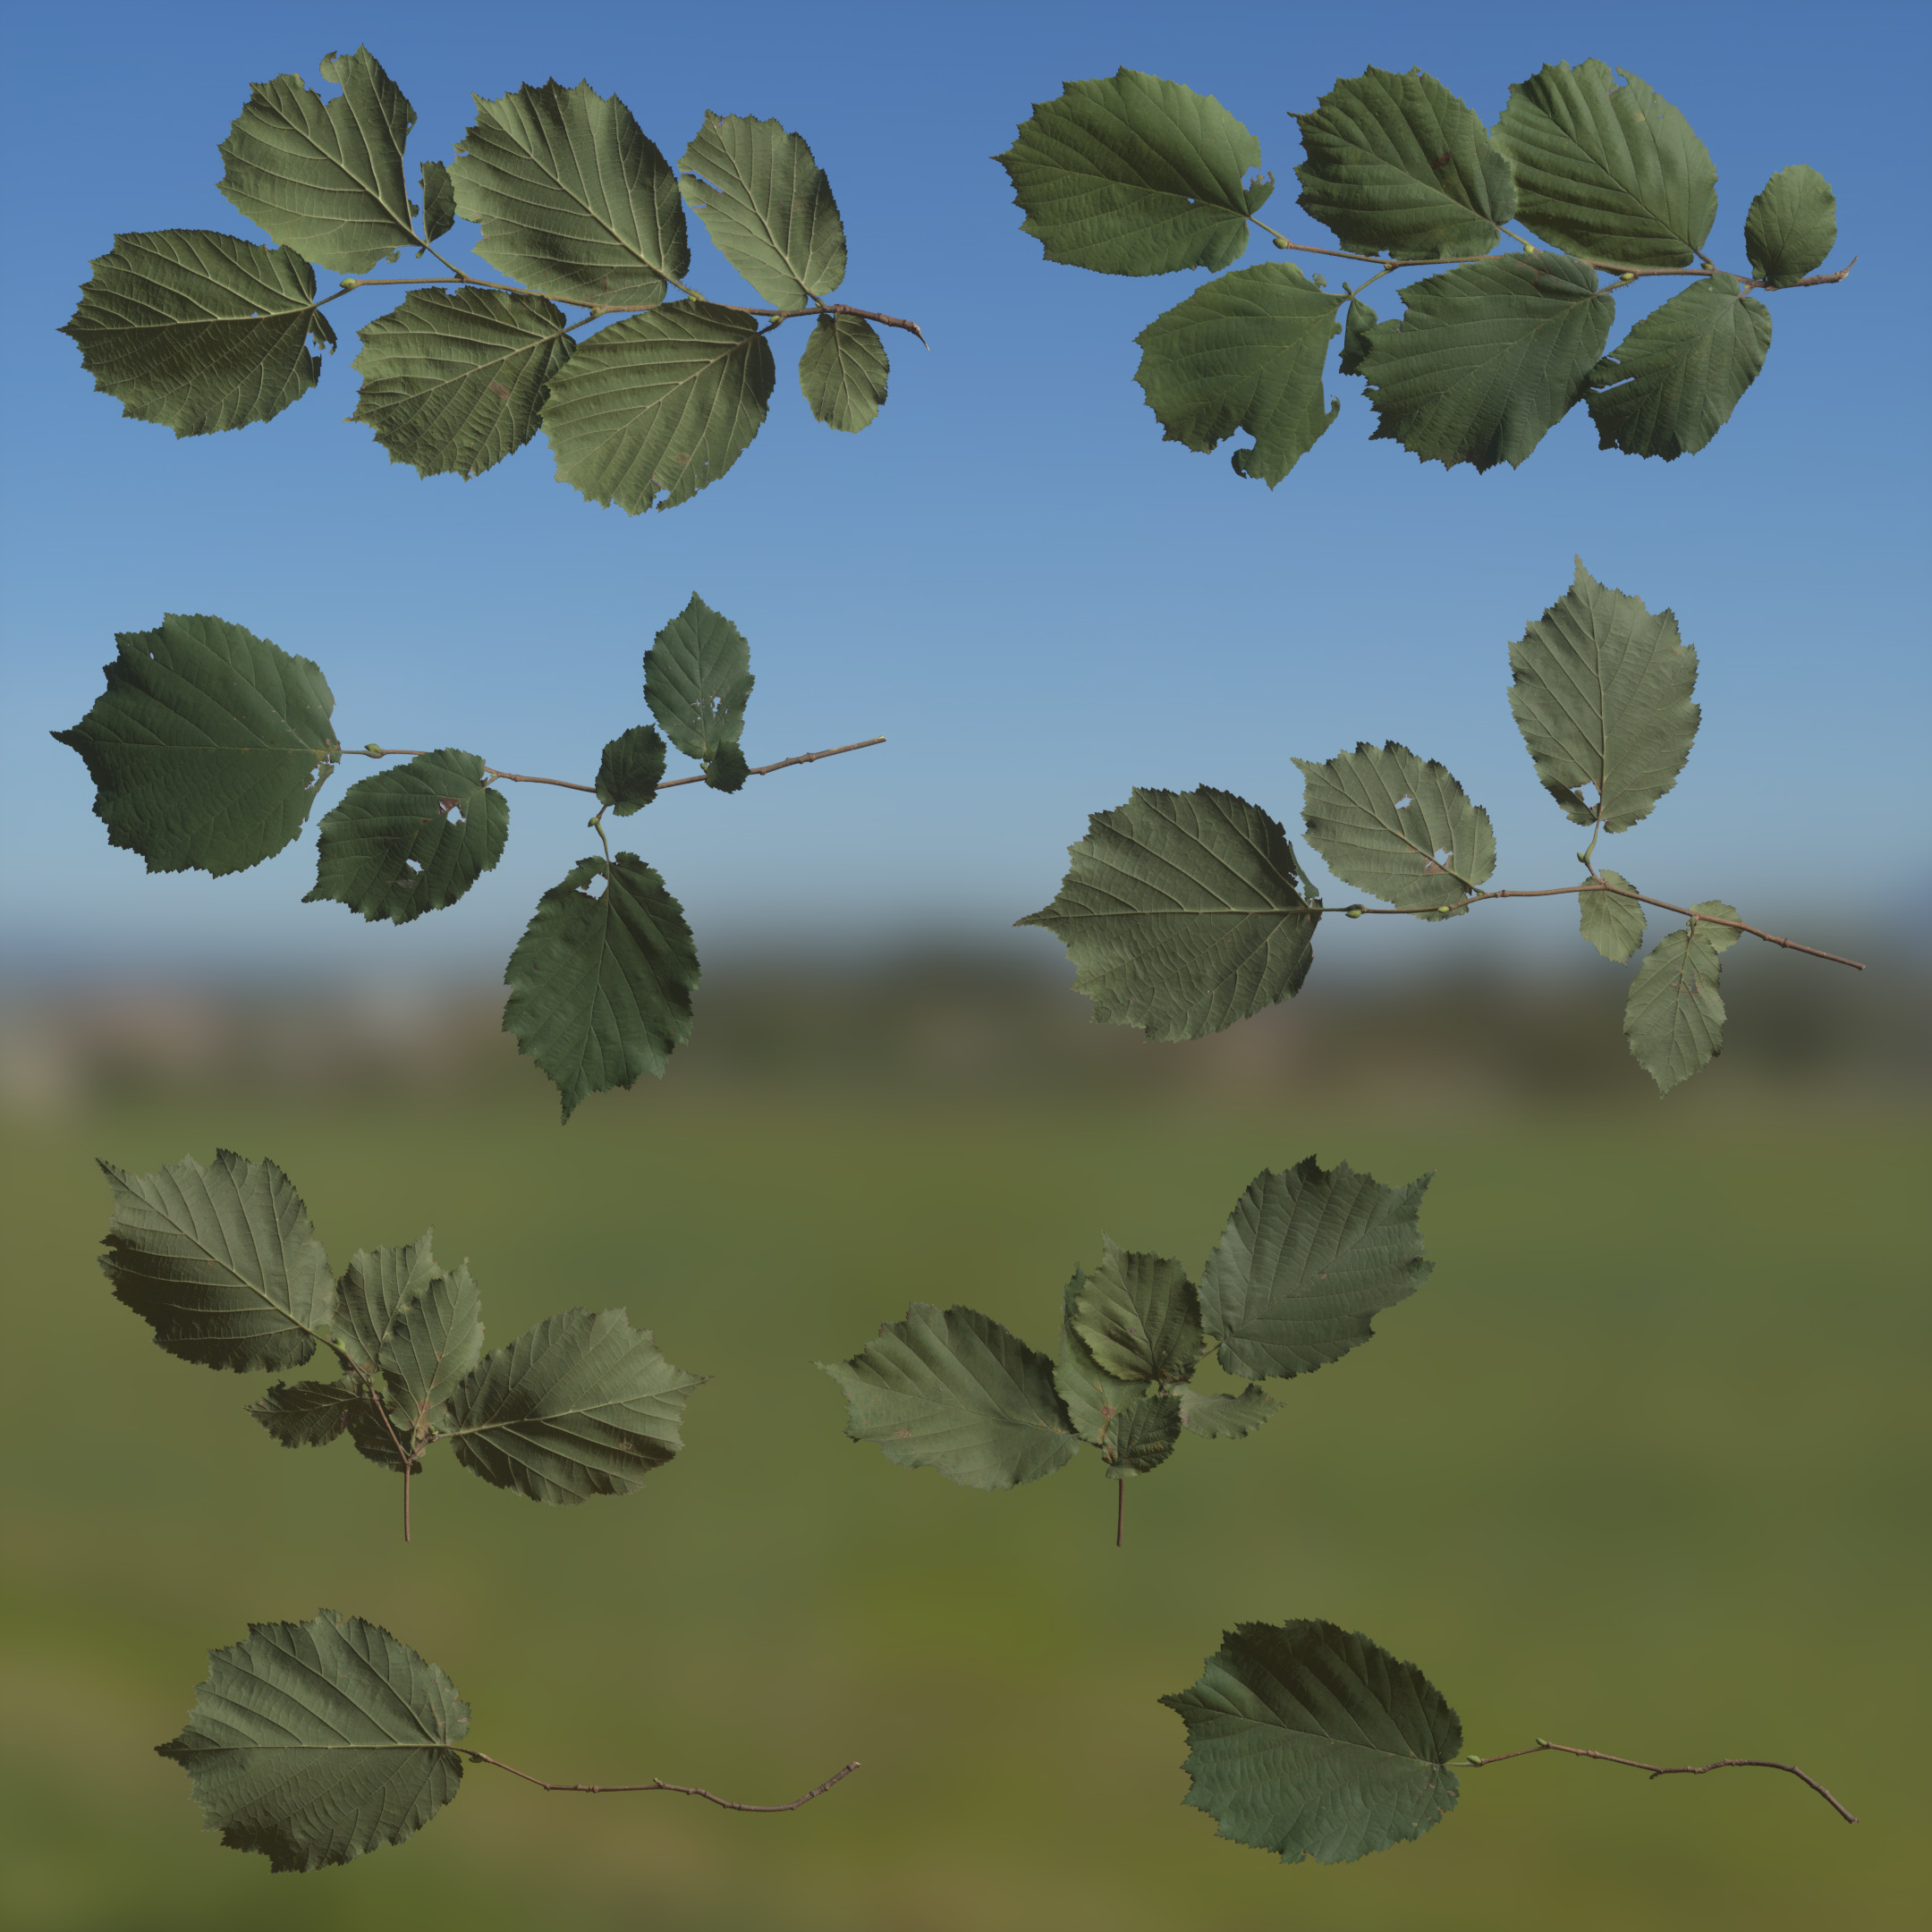 TexturesCom_3D_Scanned_Alder_Tree_Leaves_Atlas_03_header4.jpg